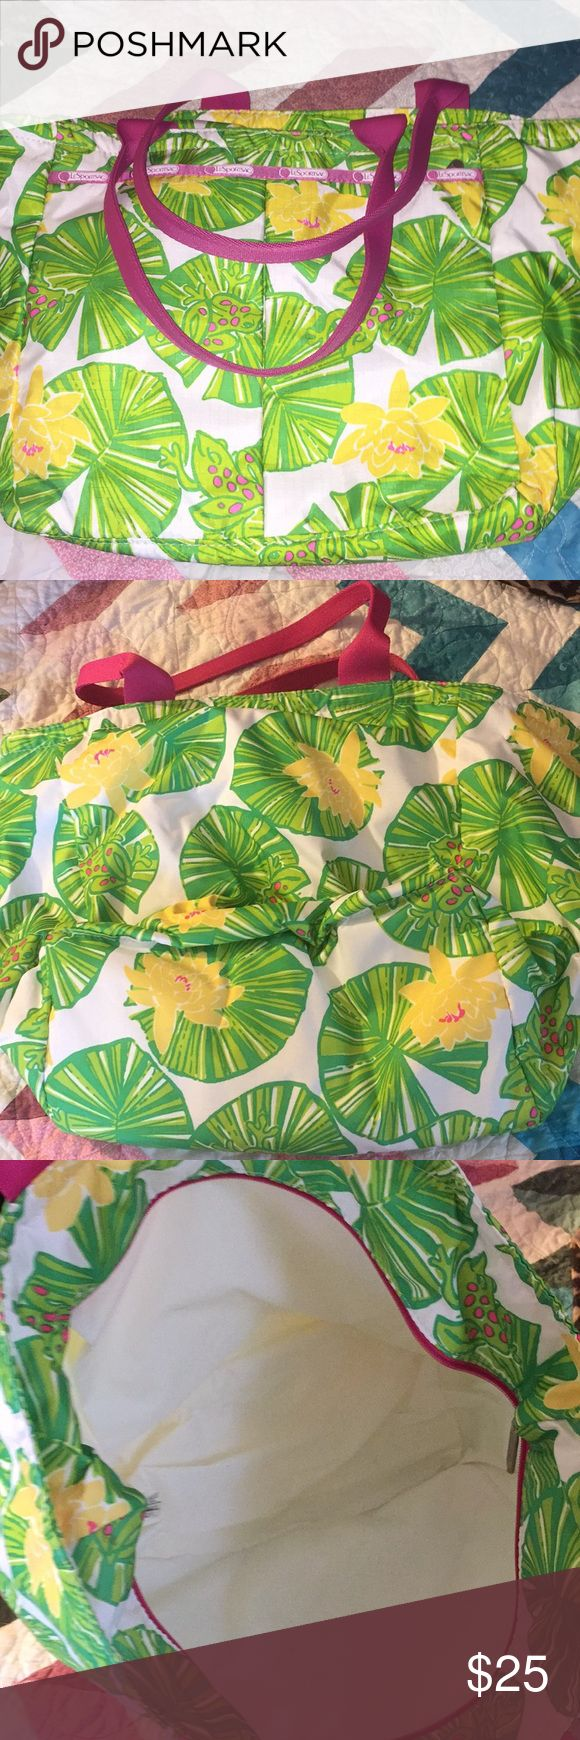 LeSportsSac insulated bag Never used LeSportsSac brightly patterned insulated bag, great for the beach Lesportsac Bags Travel Bags